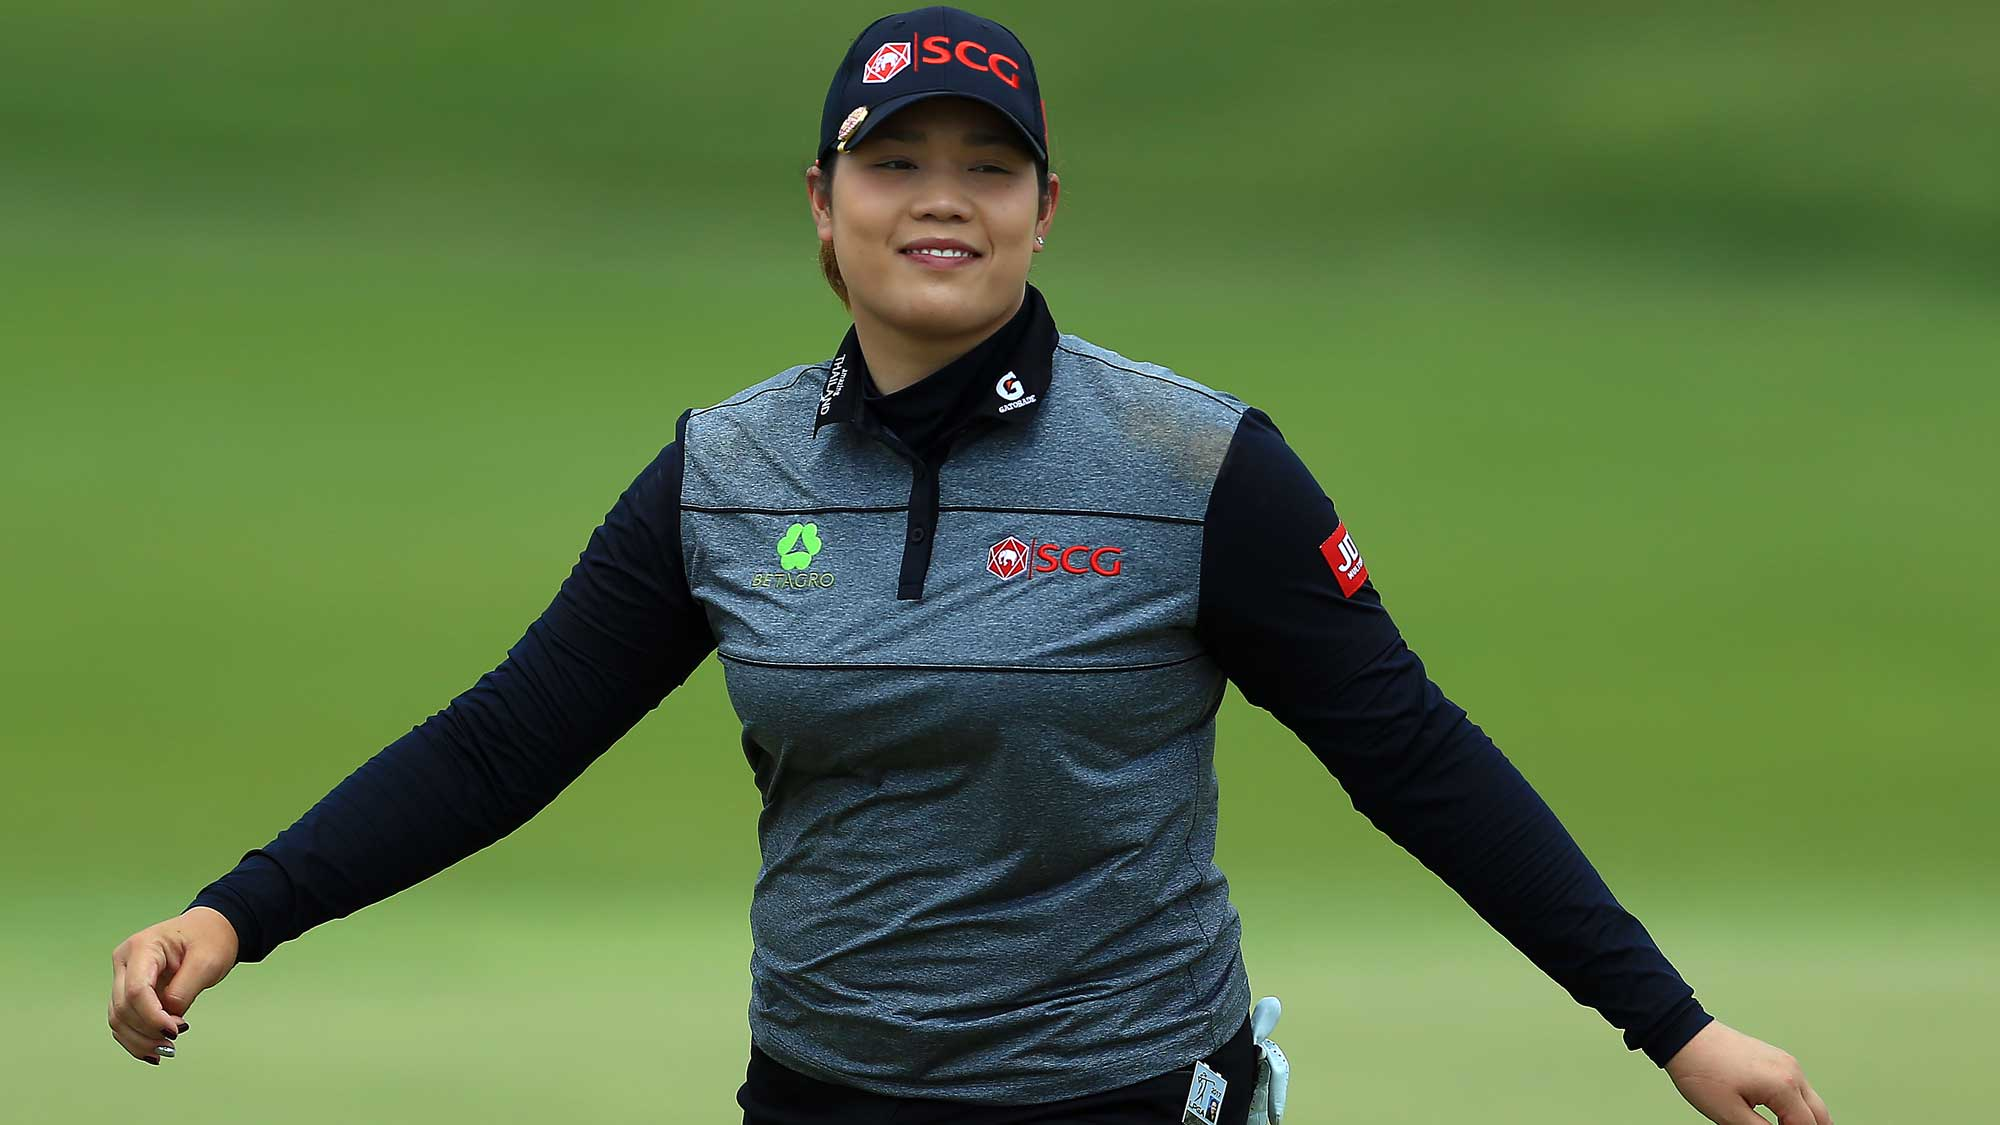 Ariya Jutanugarn of Thailand smiles after sinking her putt on the 1st green during the final round of the Manulife LPGA Classic